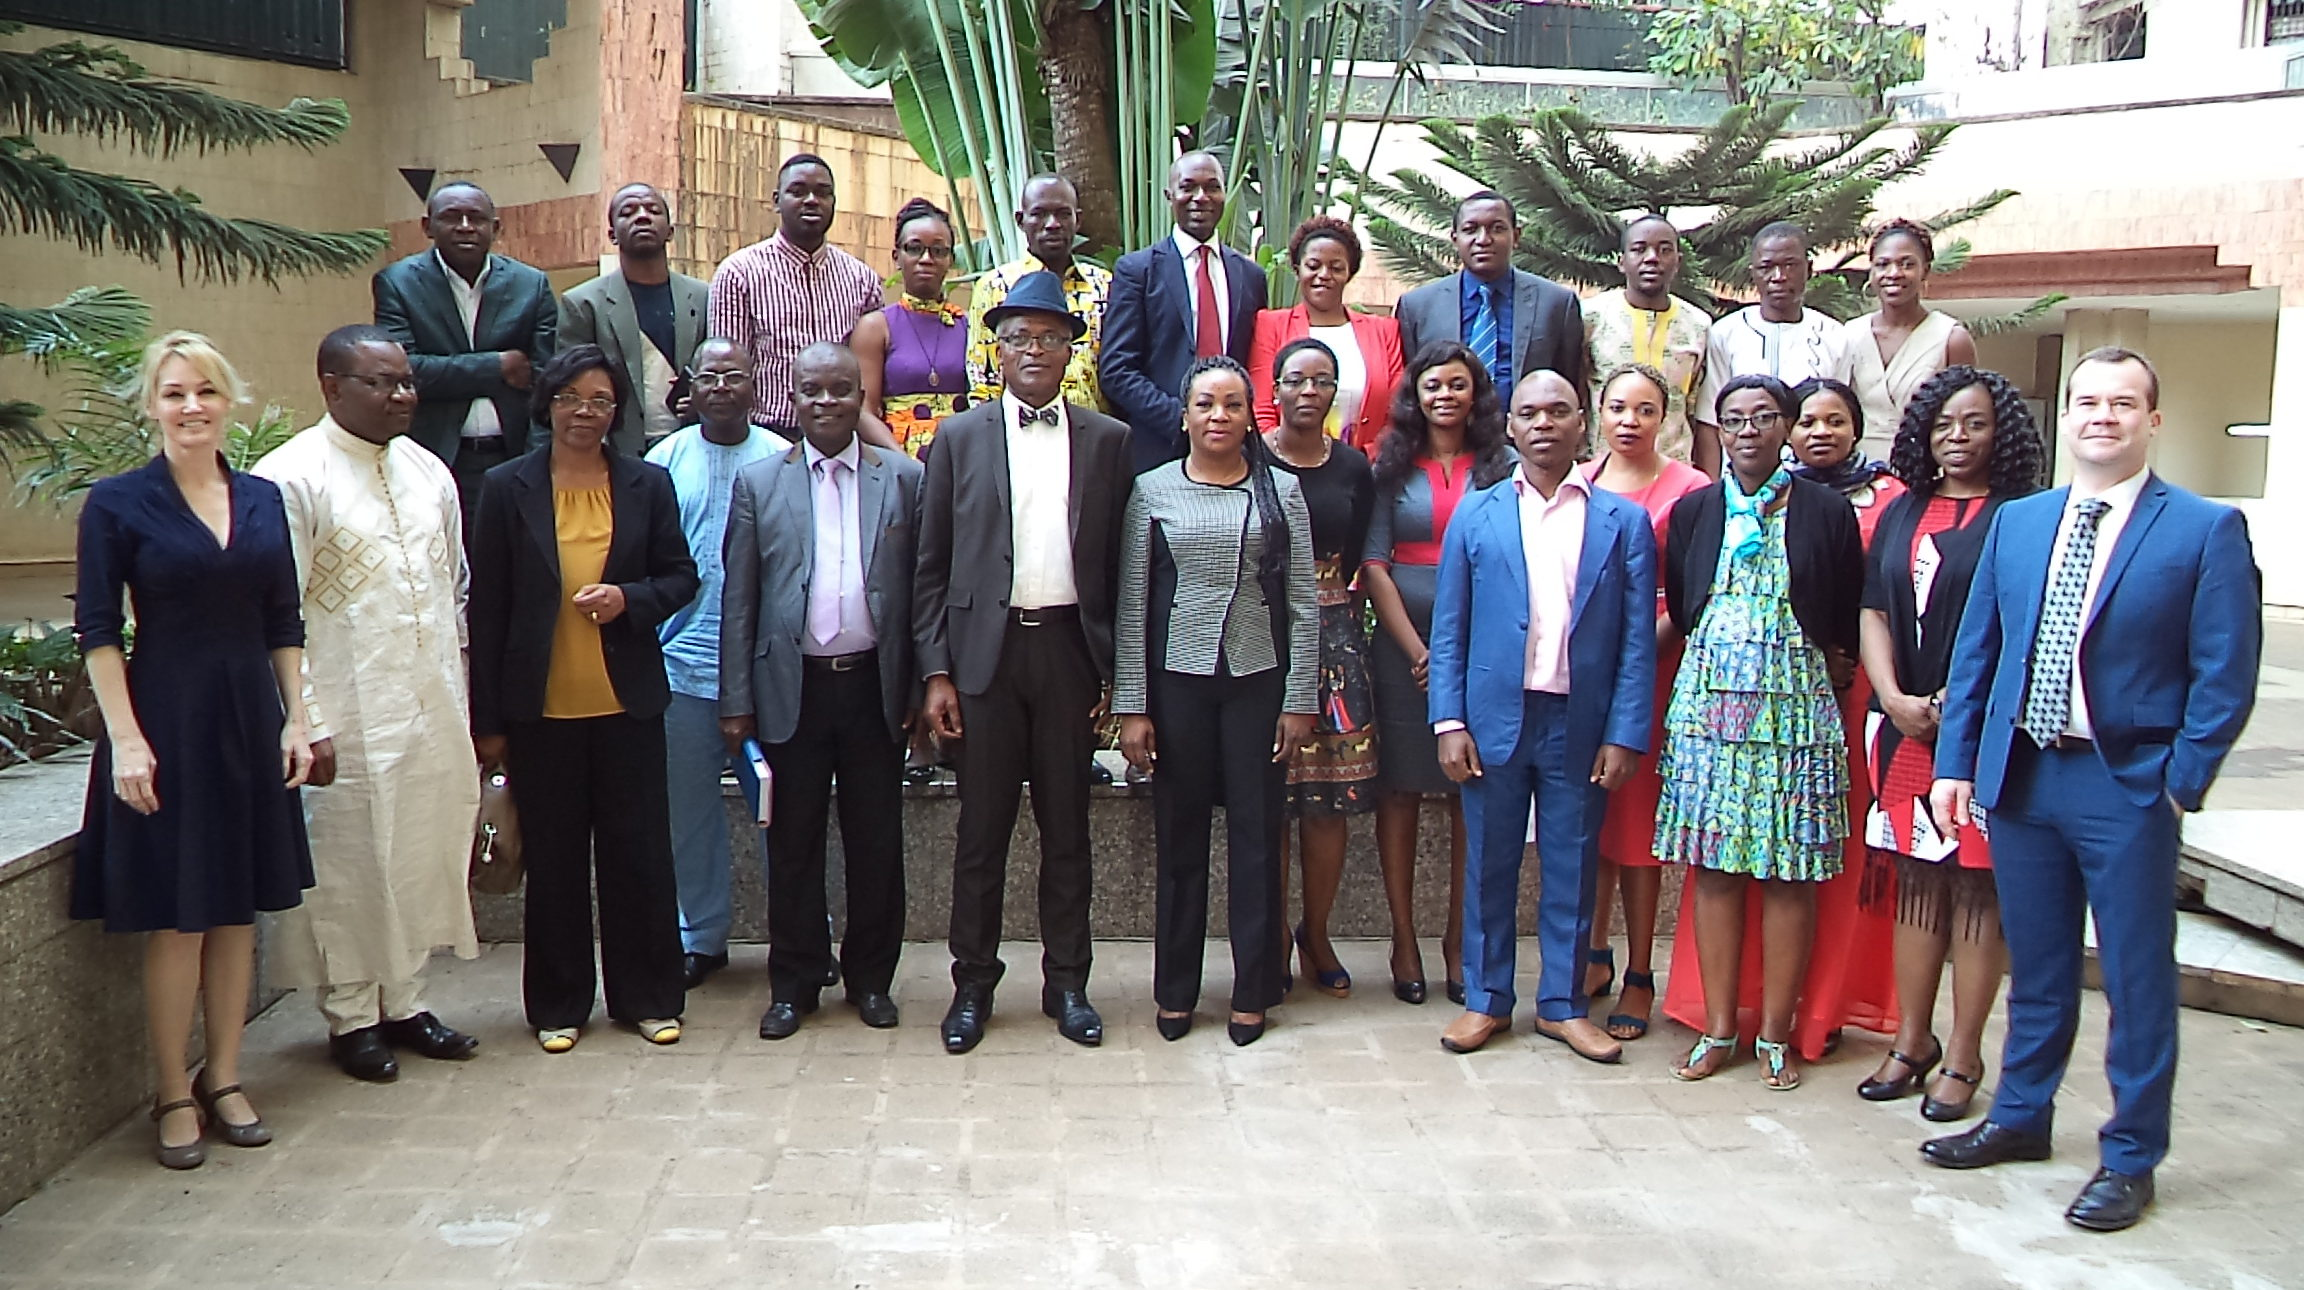 Cameroon health officials, CDC team members, Nathaniel of Veoci